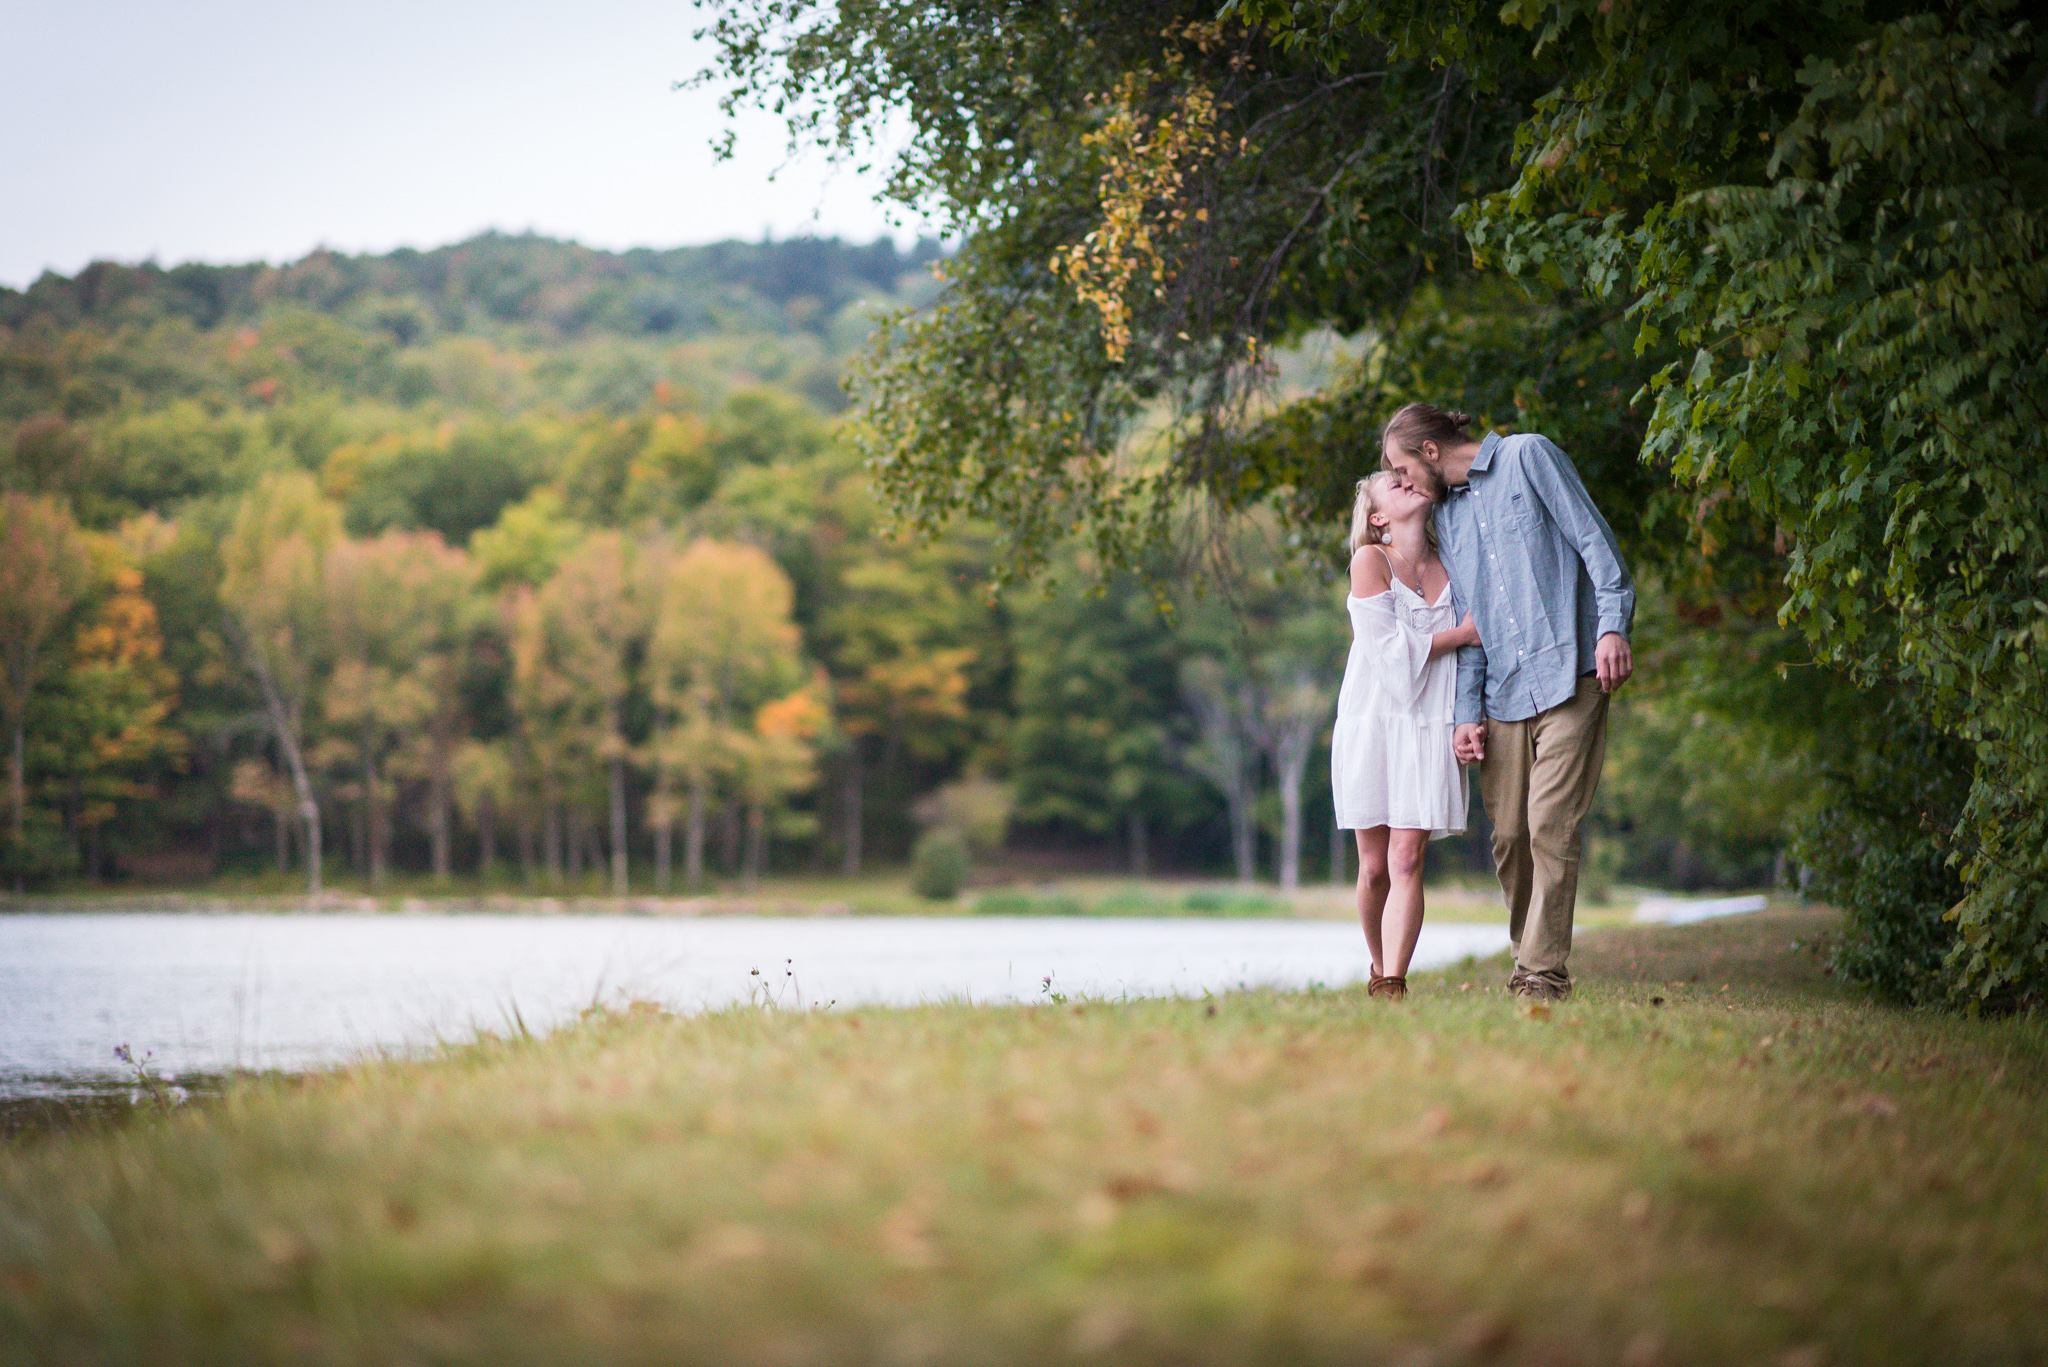 Elk-mountain-wedding-engagement-photography-uniondale-susquehanna-county-steven-serge-photography-32.jpg